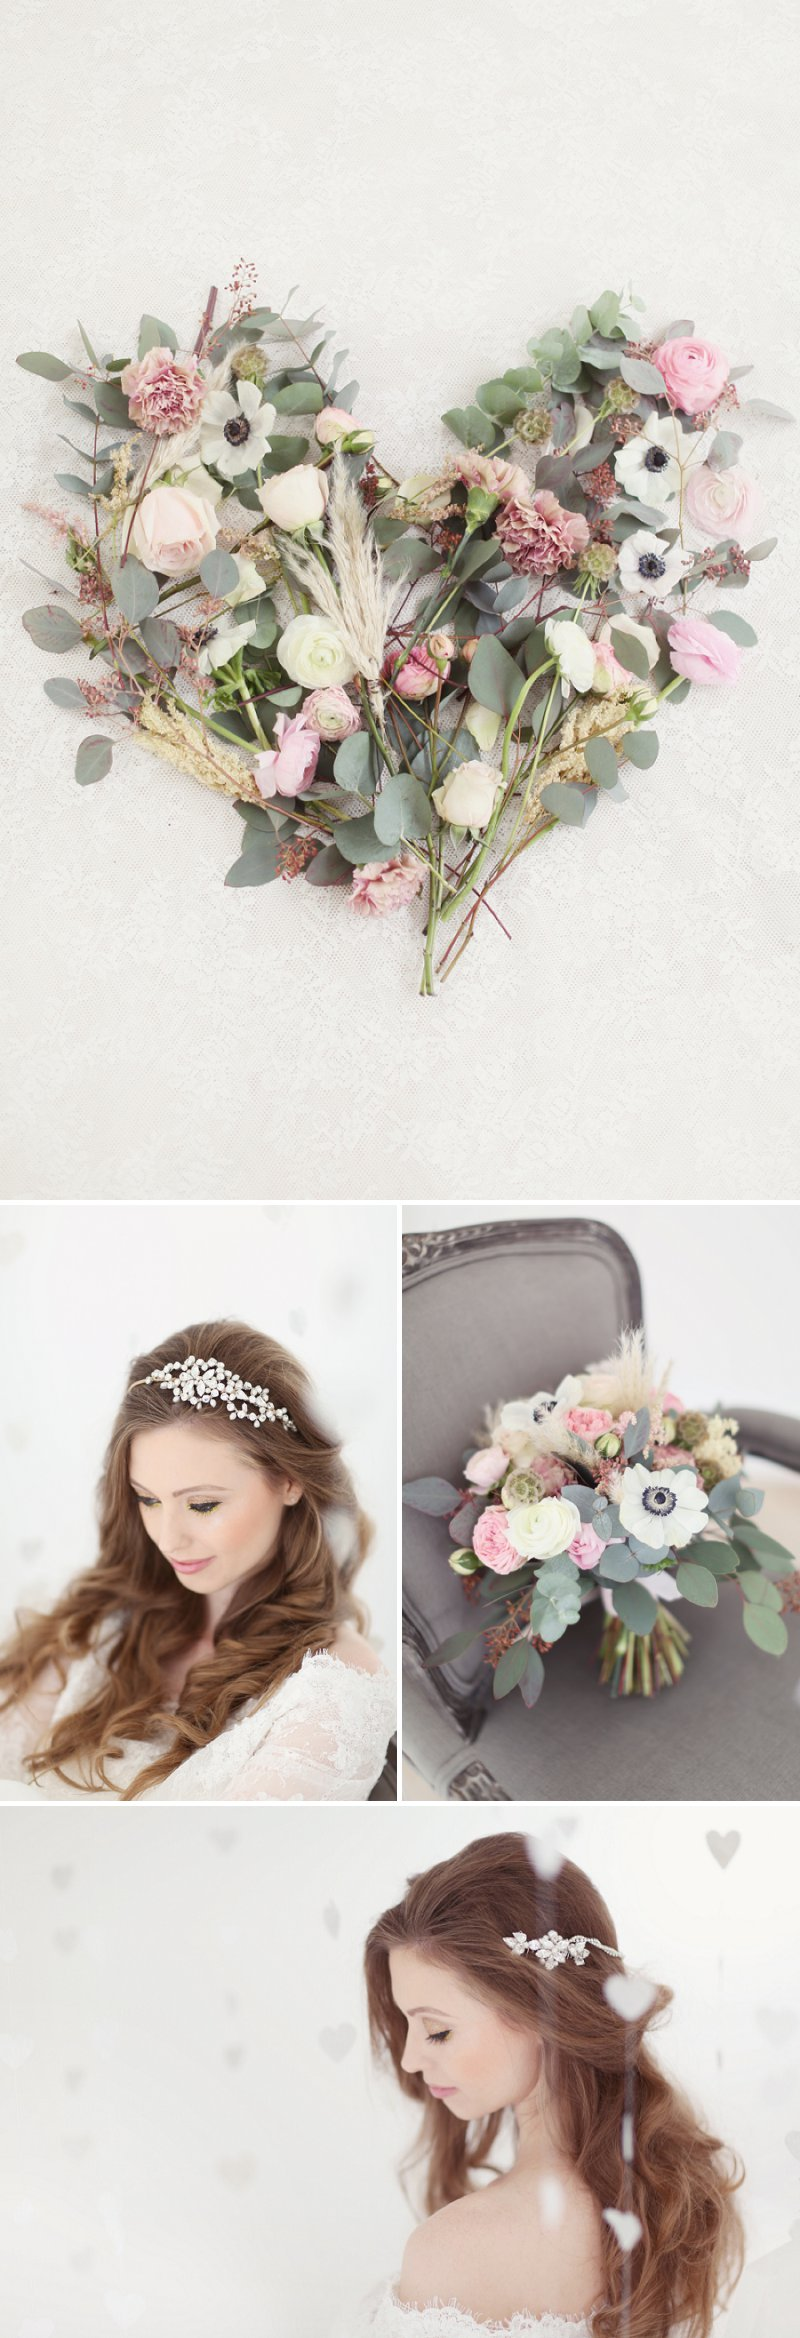 Pastel Valentines Day Inspired Bridal Shoot Featuring Hair Accessories From Corrine Smith Design With Flowers From I Heart Flowers And Images By Eva Sanders Photography 1 Pale Valentine.